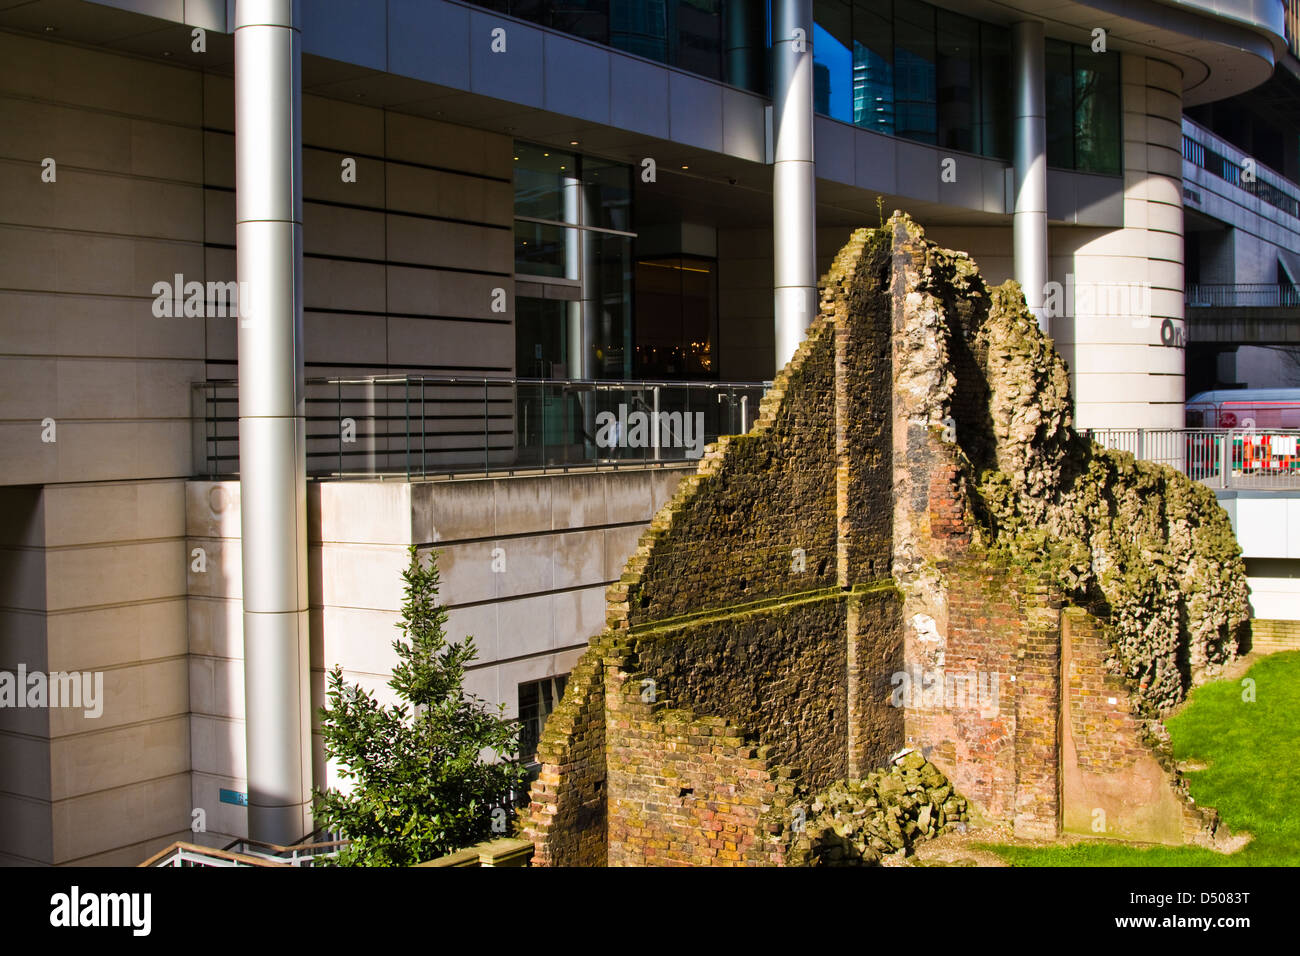 London wall, City of London - Stock Image